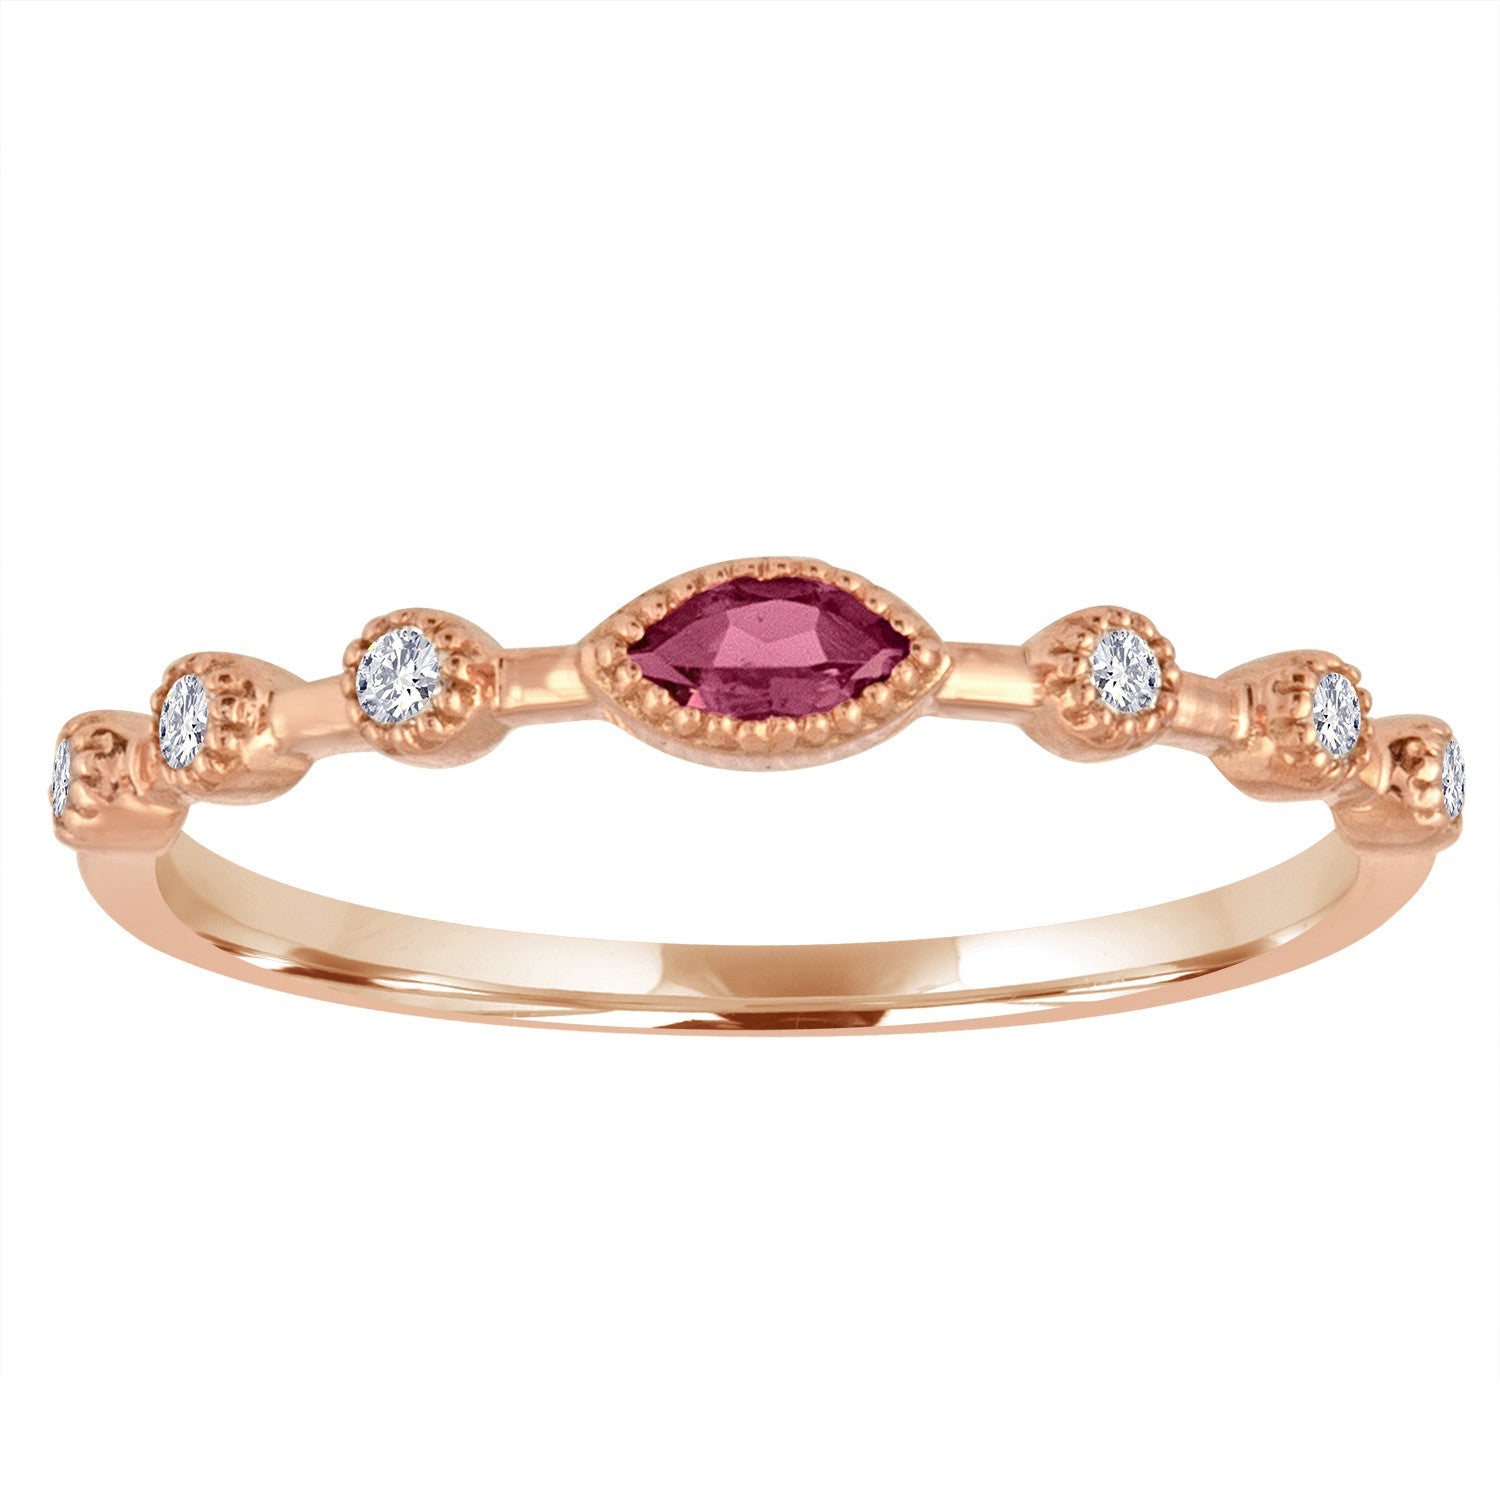 Pink tourmaline marquis center with three round stationed diamonds